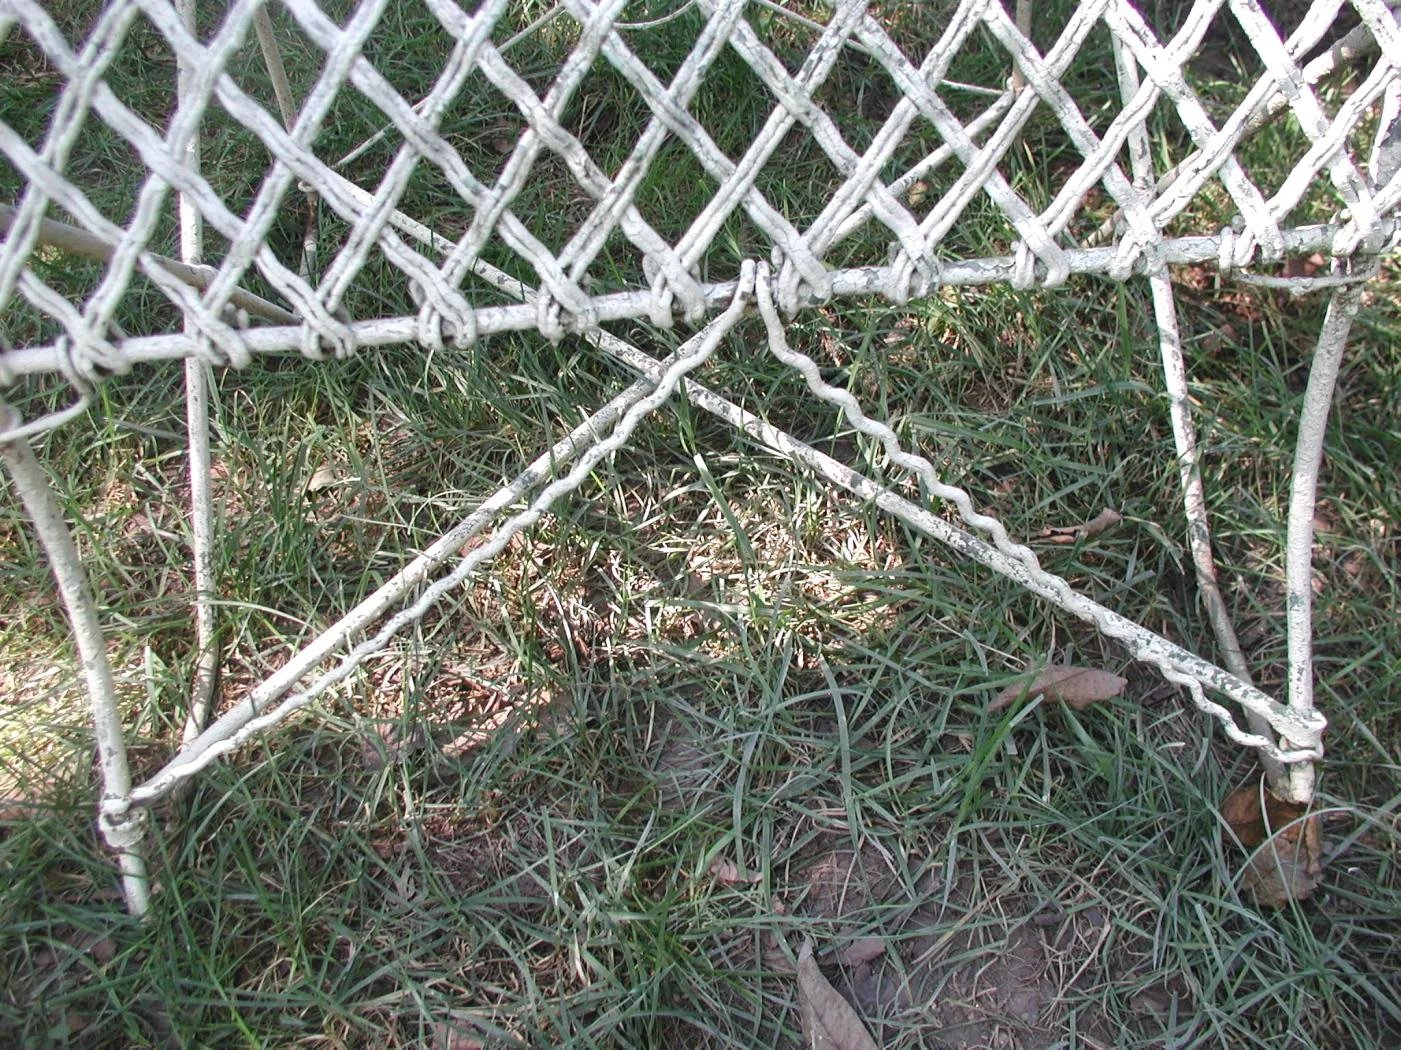 ... 19th Century French Wire Garden Settee Heirloom Traditions Ruby Lane  French Wire Garden Chairs 19th Century